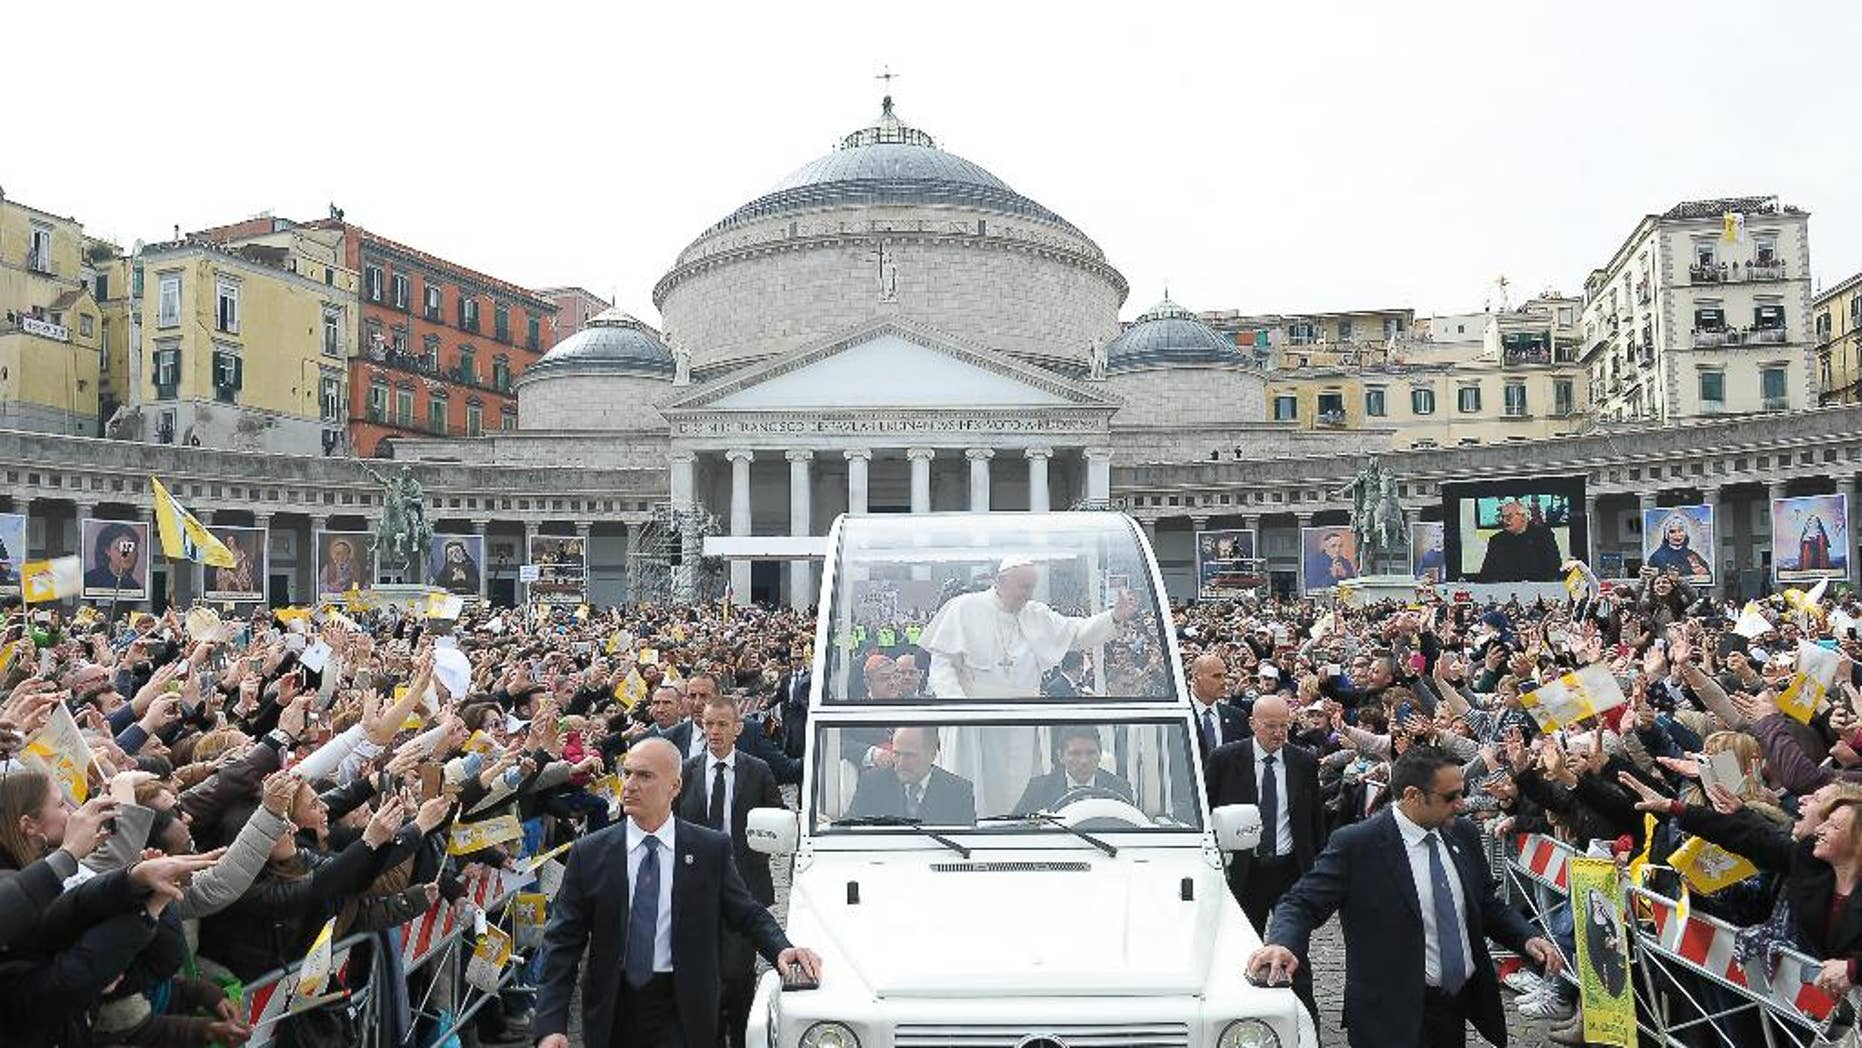 In this March 21, 2015 pool photo, made available Monday, March 23, 2015, Pope Francis, center, is cheered by faithful as he arrives with his popemobile to celebrate a Mass, in Naples, Italy. Pope Francis made an impassioned defense of the unemployed during a speech to people in the poor Neapolitan neighborhood of Scampia Saturday. (AP Photo/L'Osservatore Romano, Pool)